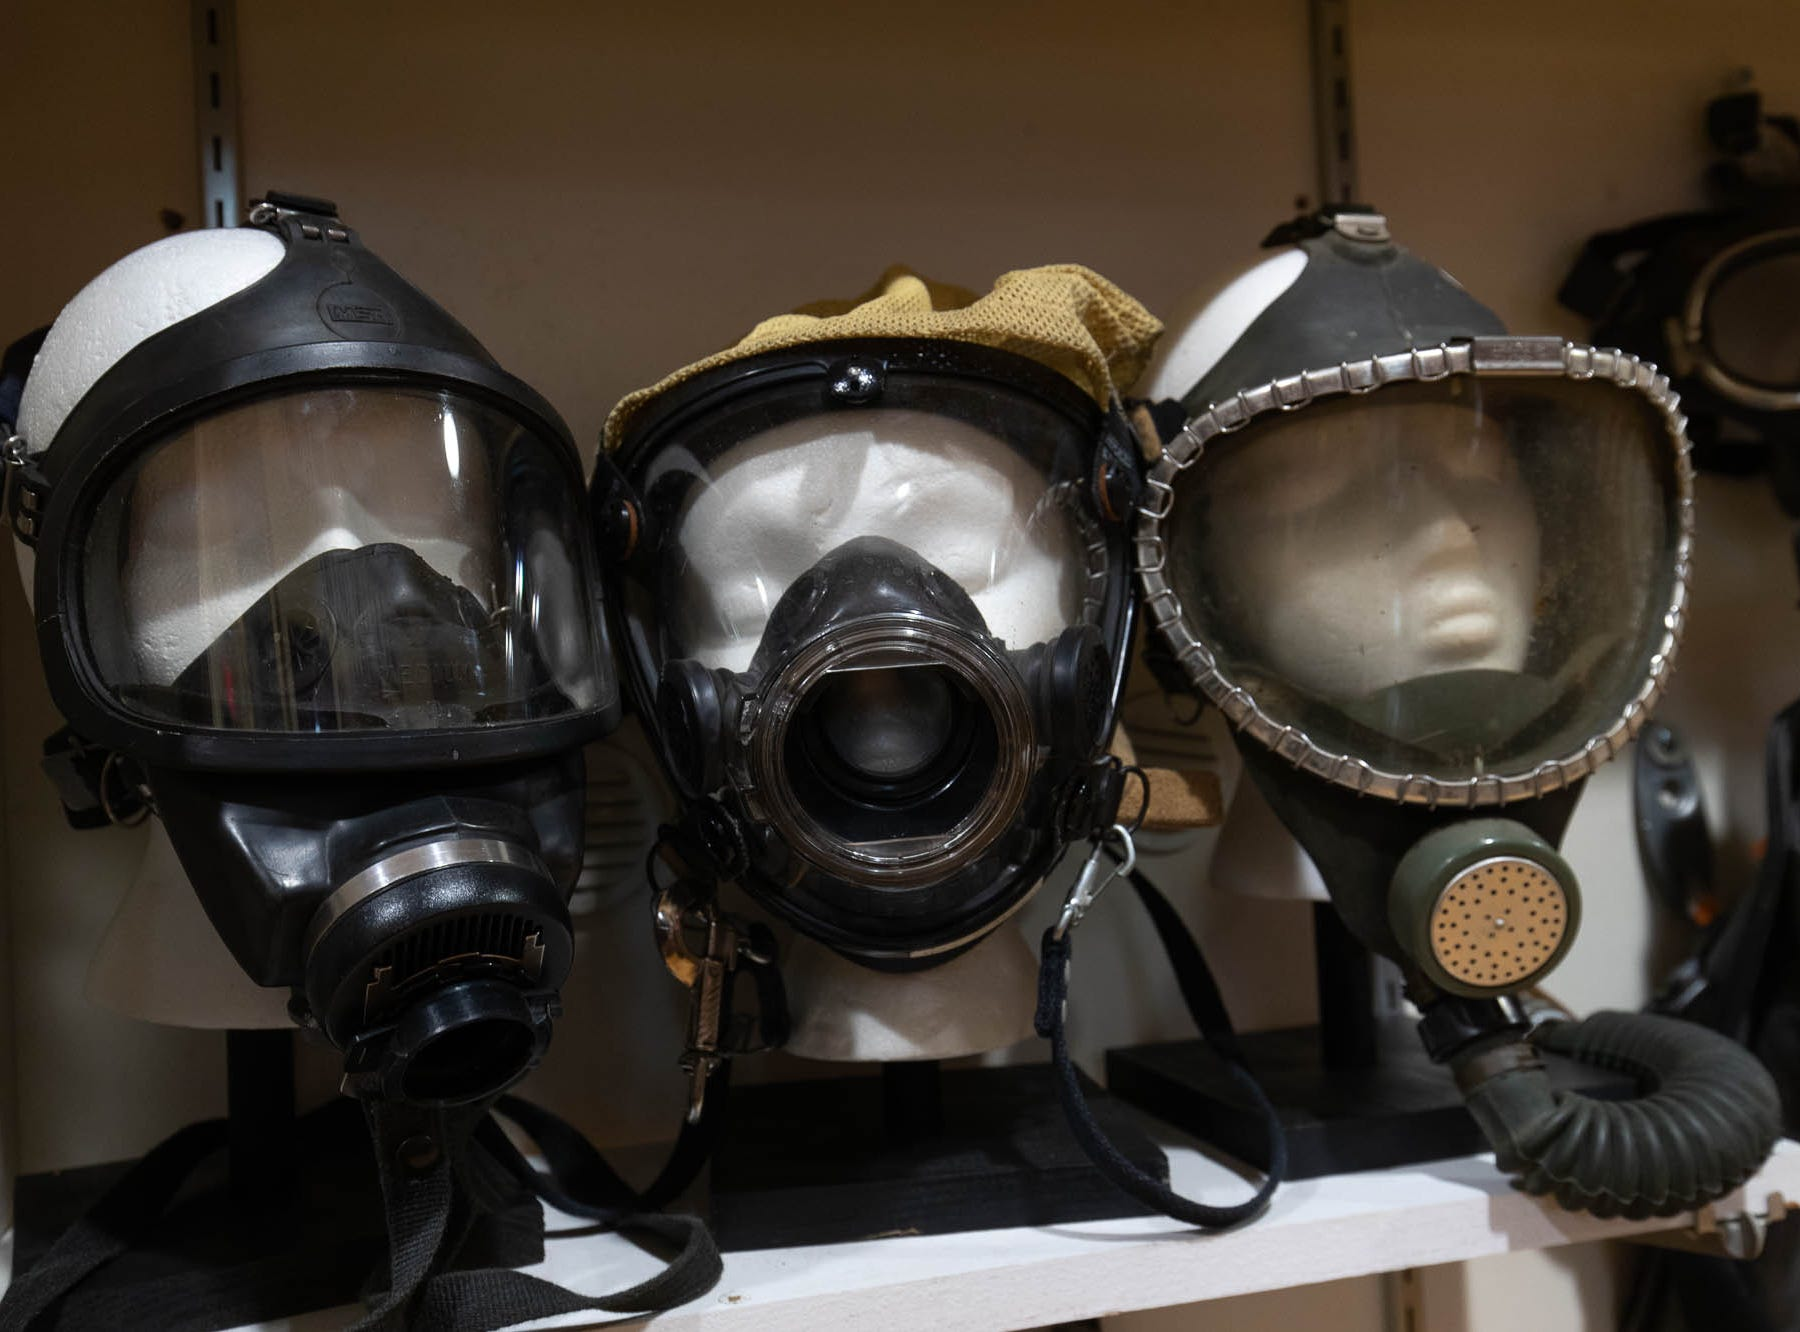 Vintage SCBA masks are seen in the new Greater Hanover Area Fire Museum, Saturday, Sept. 1, 2018, in Hanover.